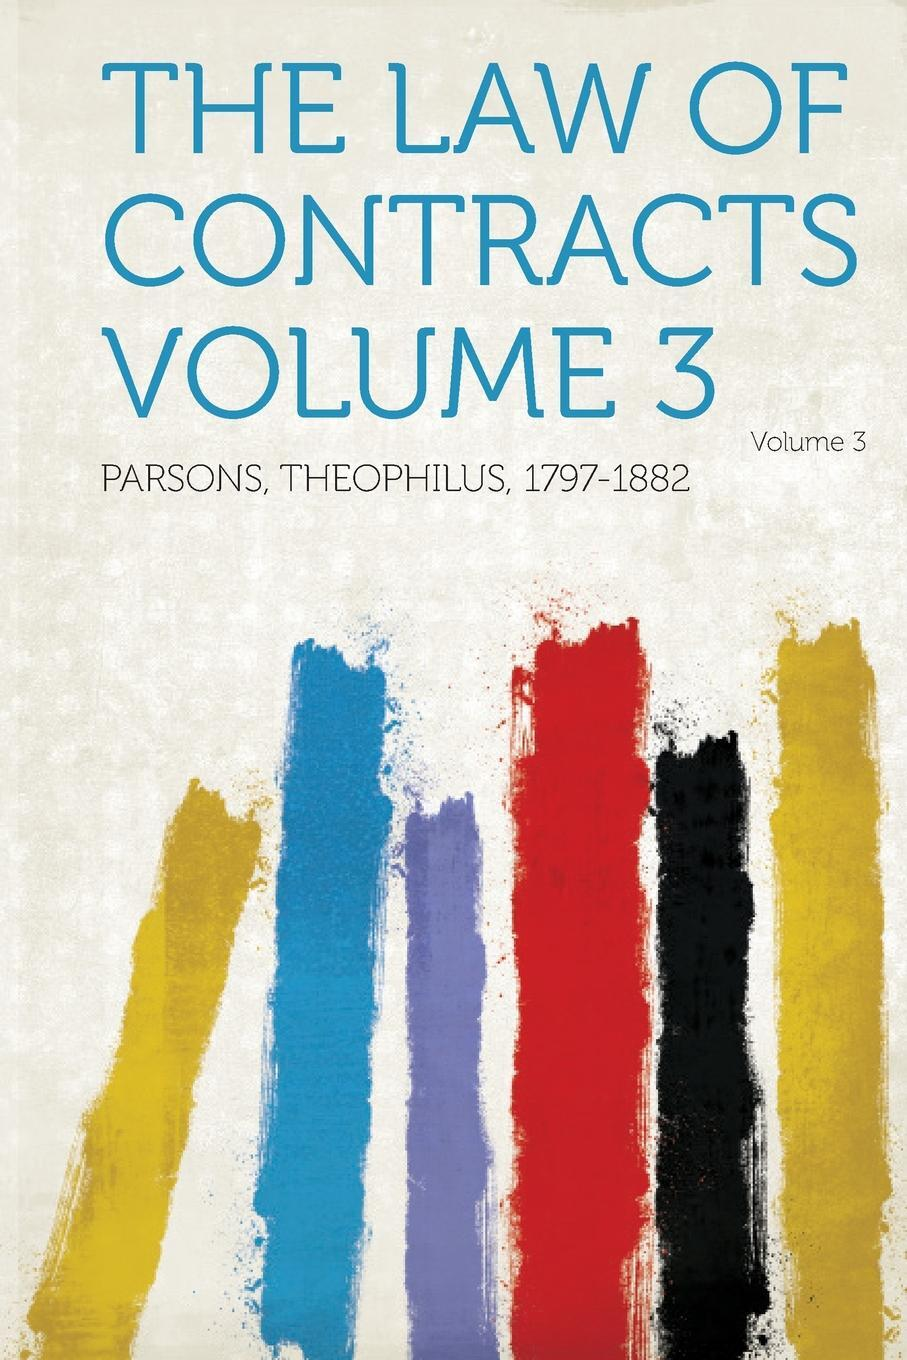 Parsons Theophilus 1797-1882. The Law of Contracts Volume 3